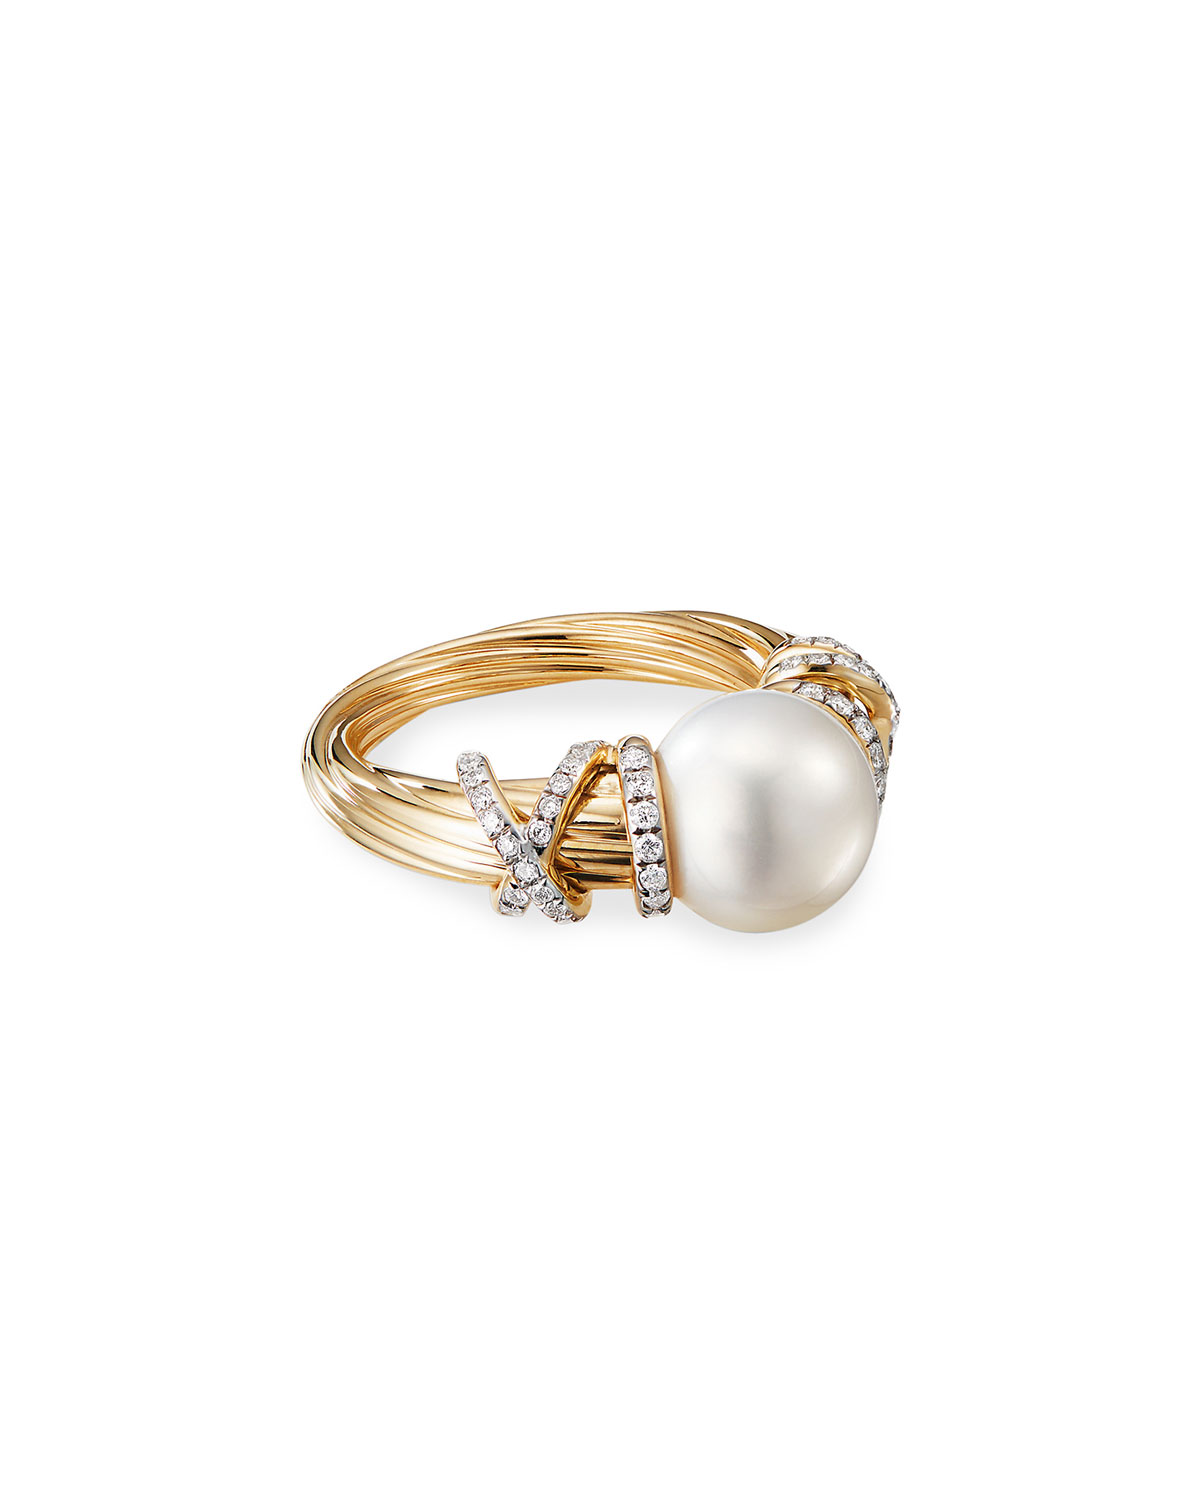 David Yurman Helena 18k Pearl & Diamond Ring, Size 6